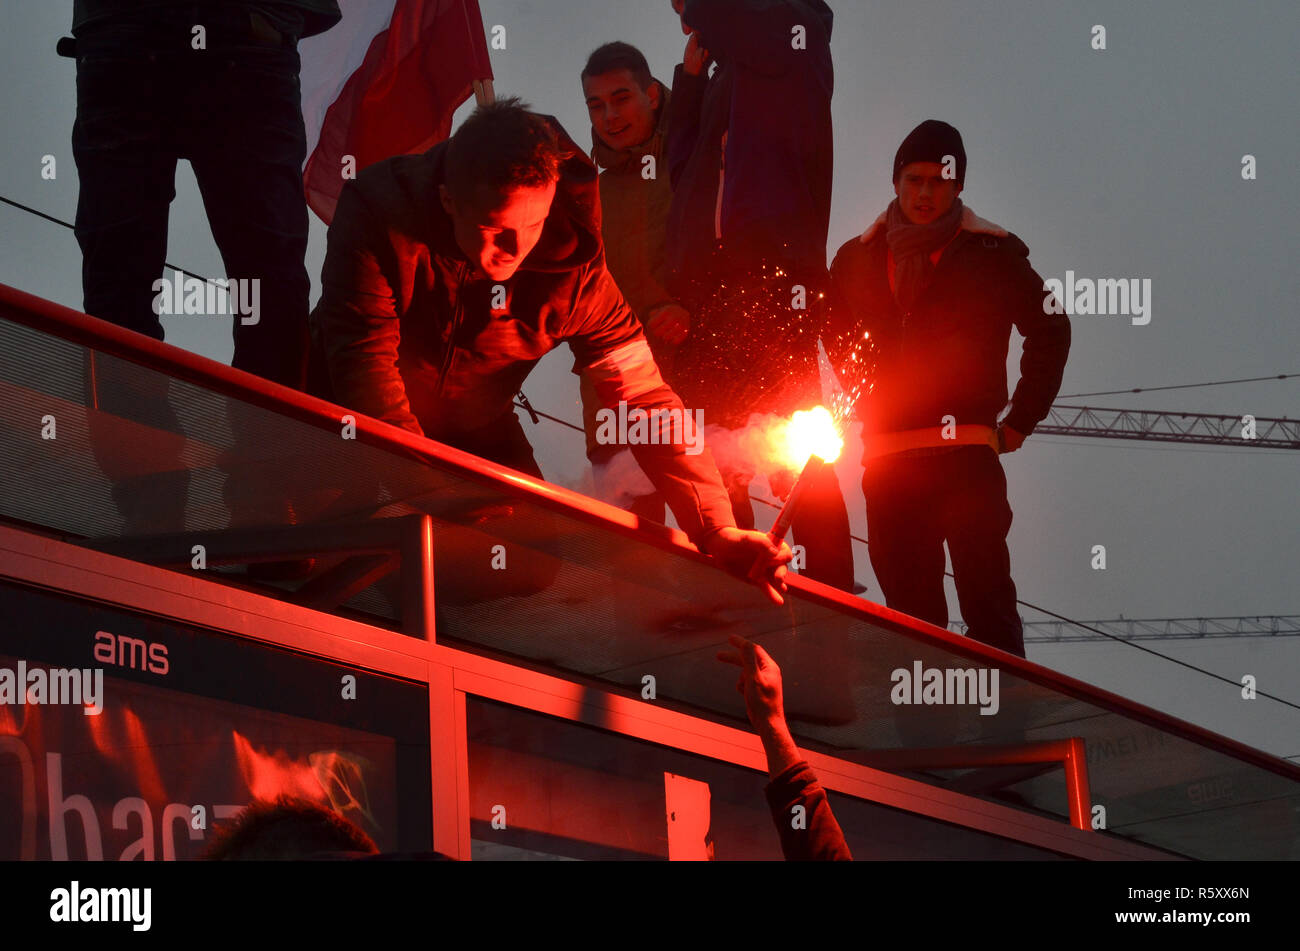 A man hands over a flare on top of a bus stop, Polish National Independence Day march, 100 year anniversary, Warsaw, 11 November 2018, Poland, 2018 Stock Photo